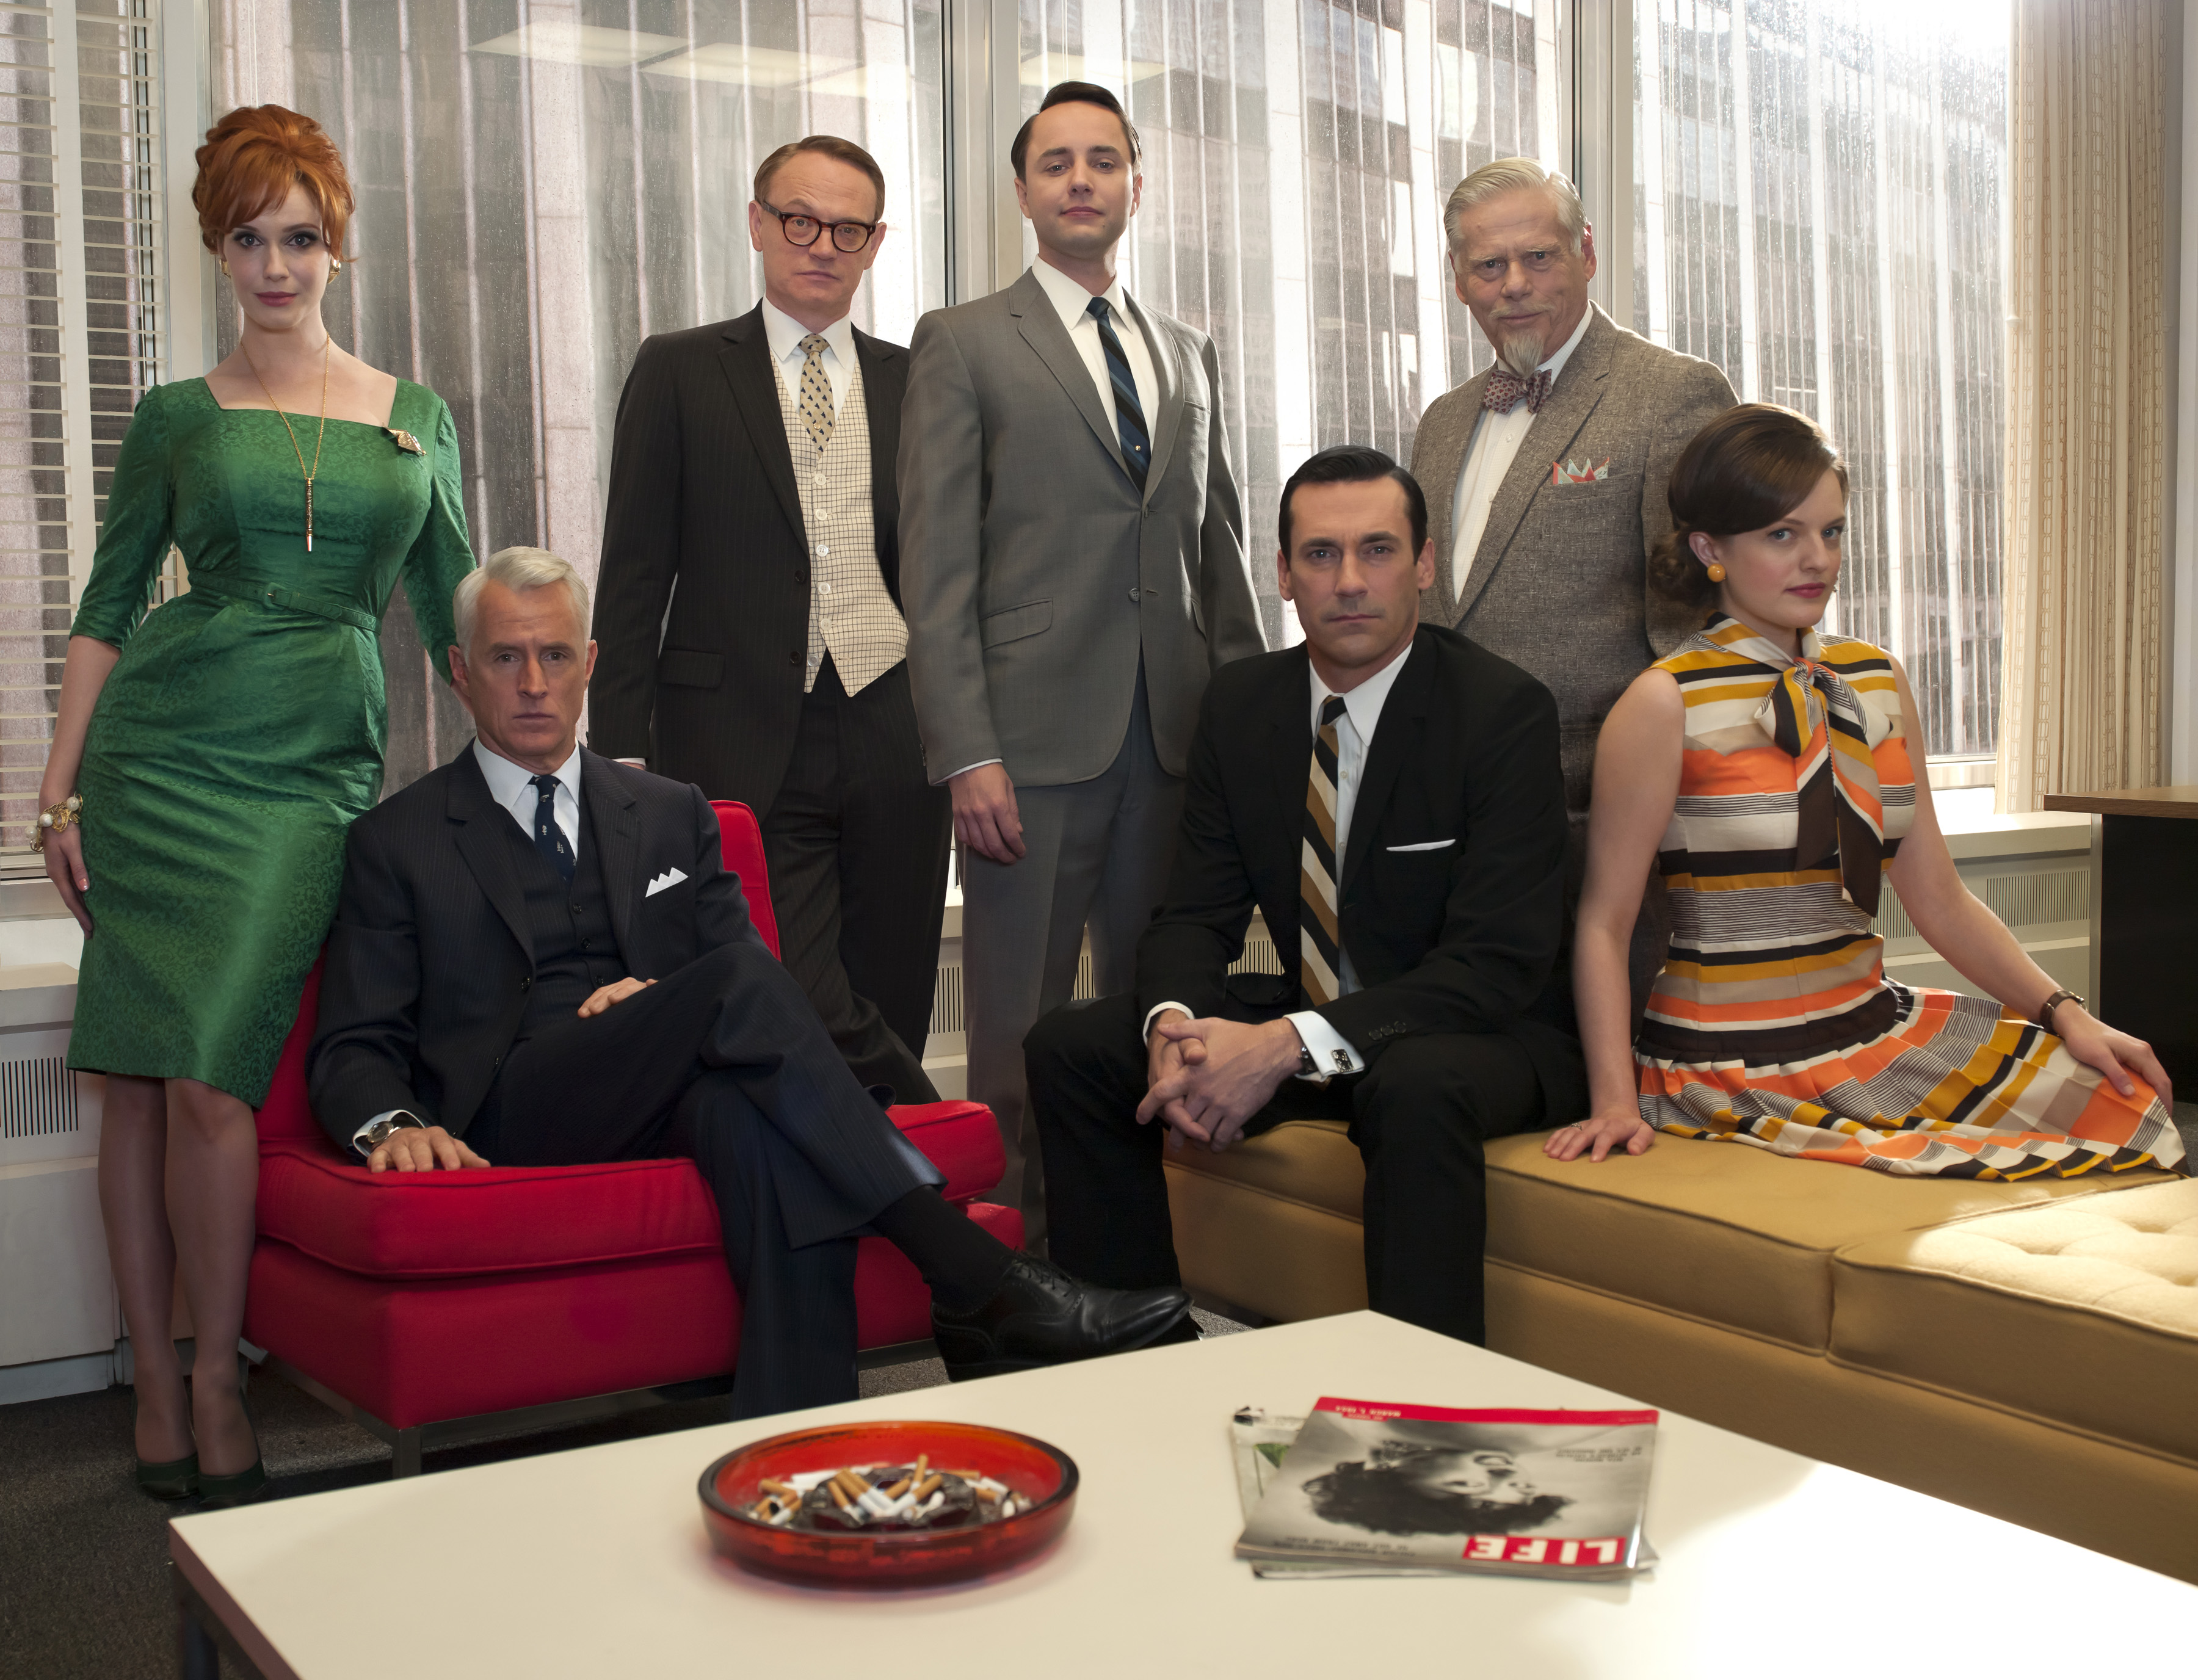 Cast of 'Mad Men'